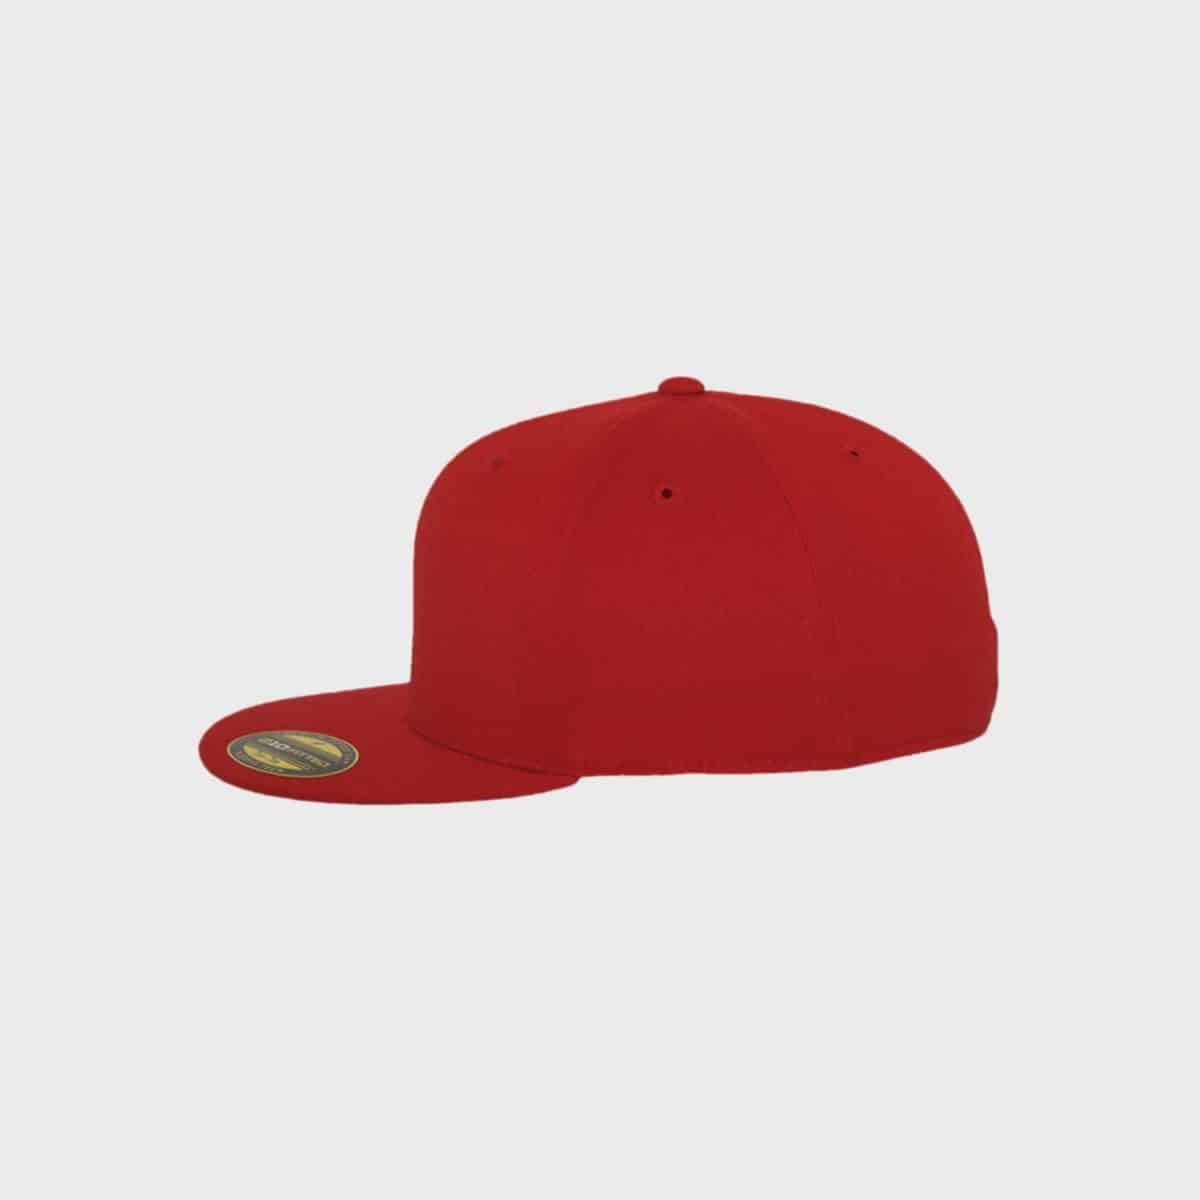 Flexfit FlexfitCaps FFE 6210 Red Side